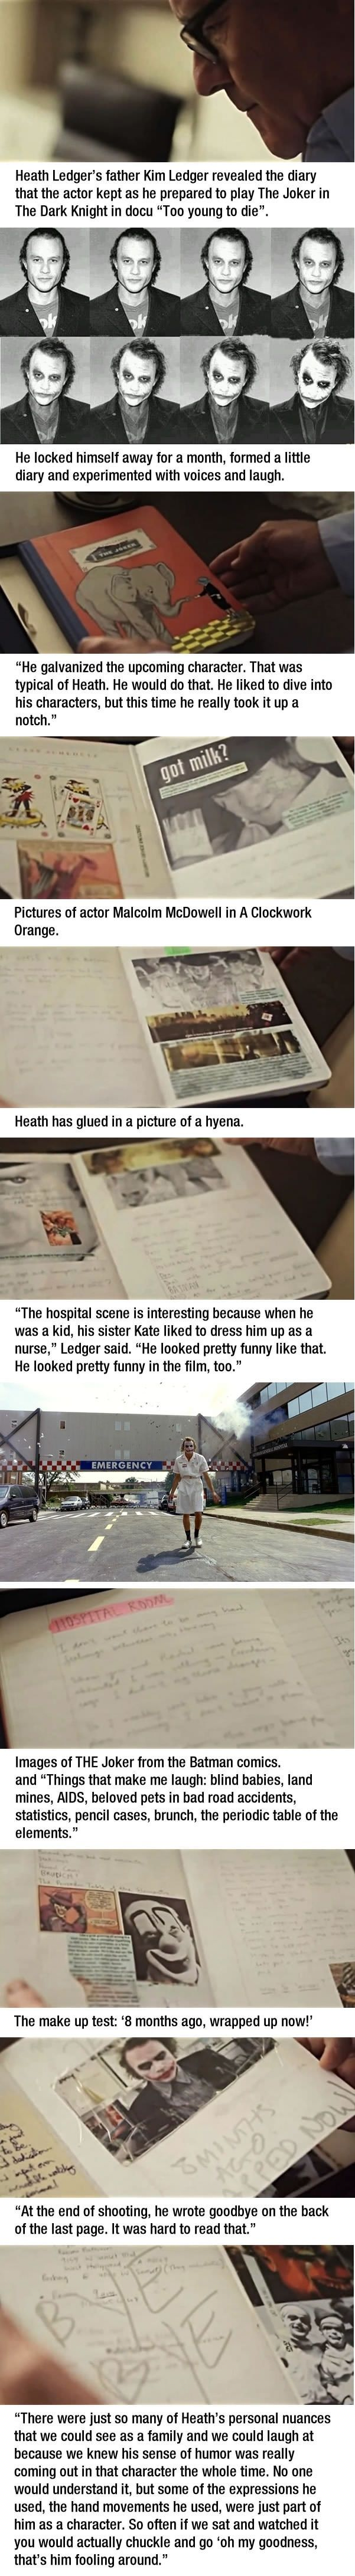 Heath Ledger's joker diary